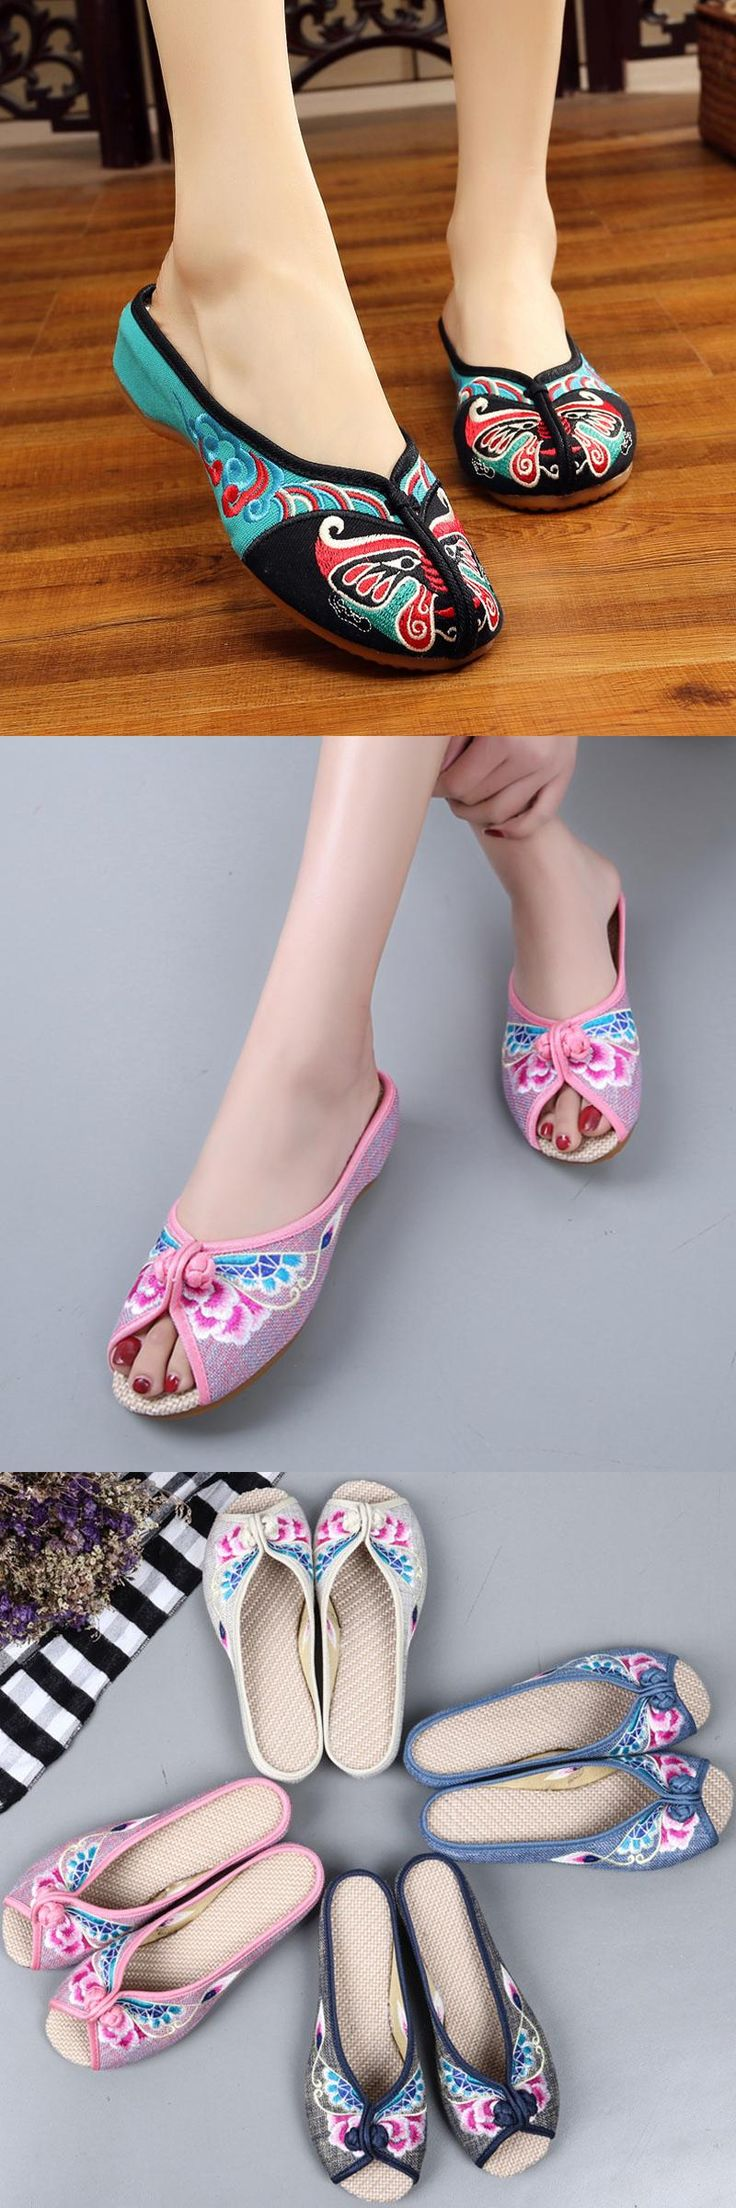 Summer Retro embroidery shoes women slippers peep-toe home slippers oxfords shoes women slides Flip flops mujer flats sandals